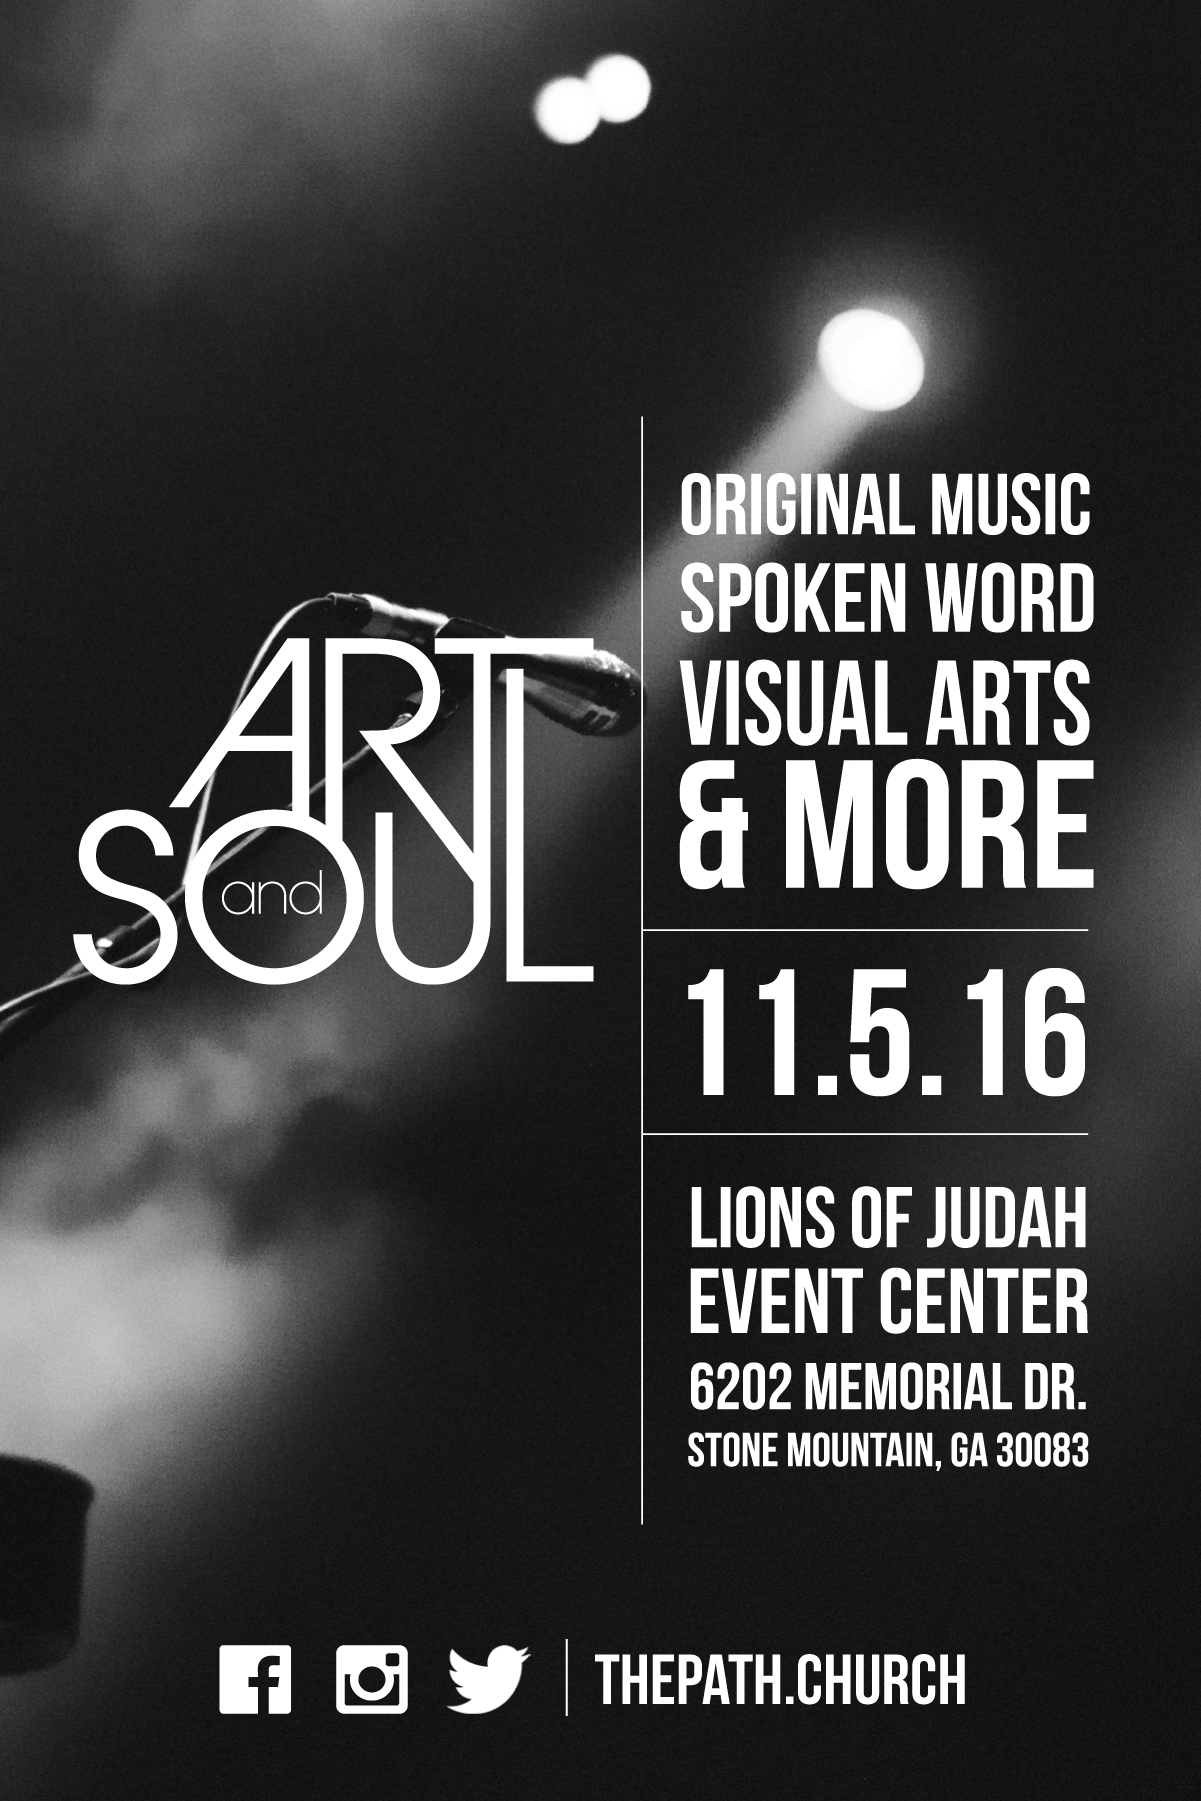 Doors Open at 7pm Performances Start at 8pm